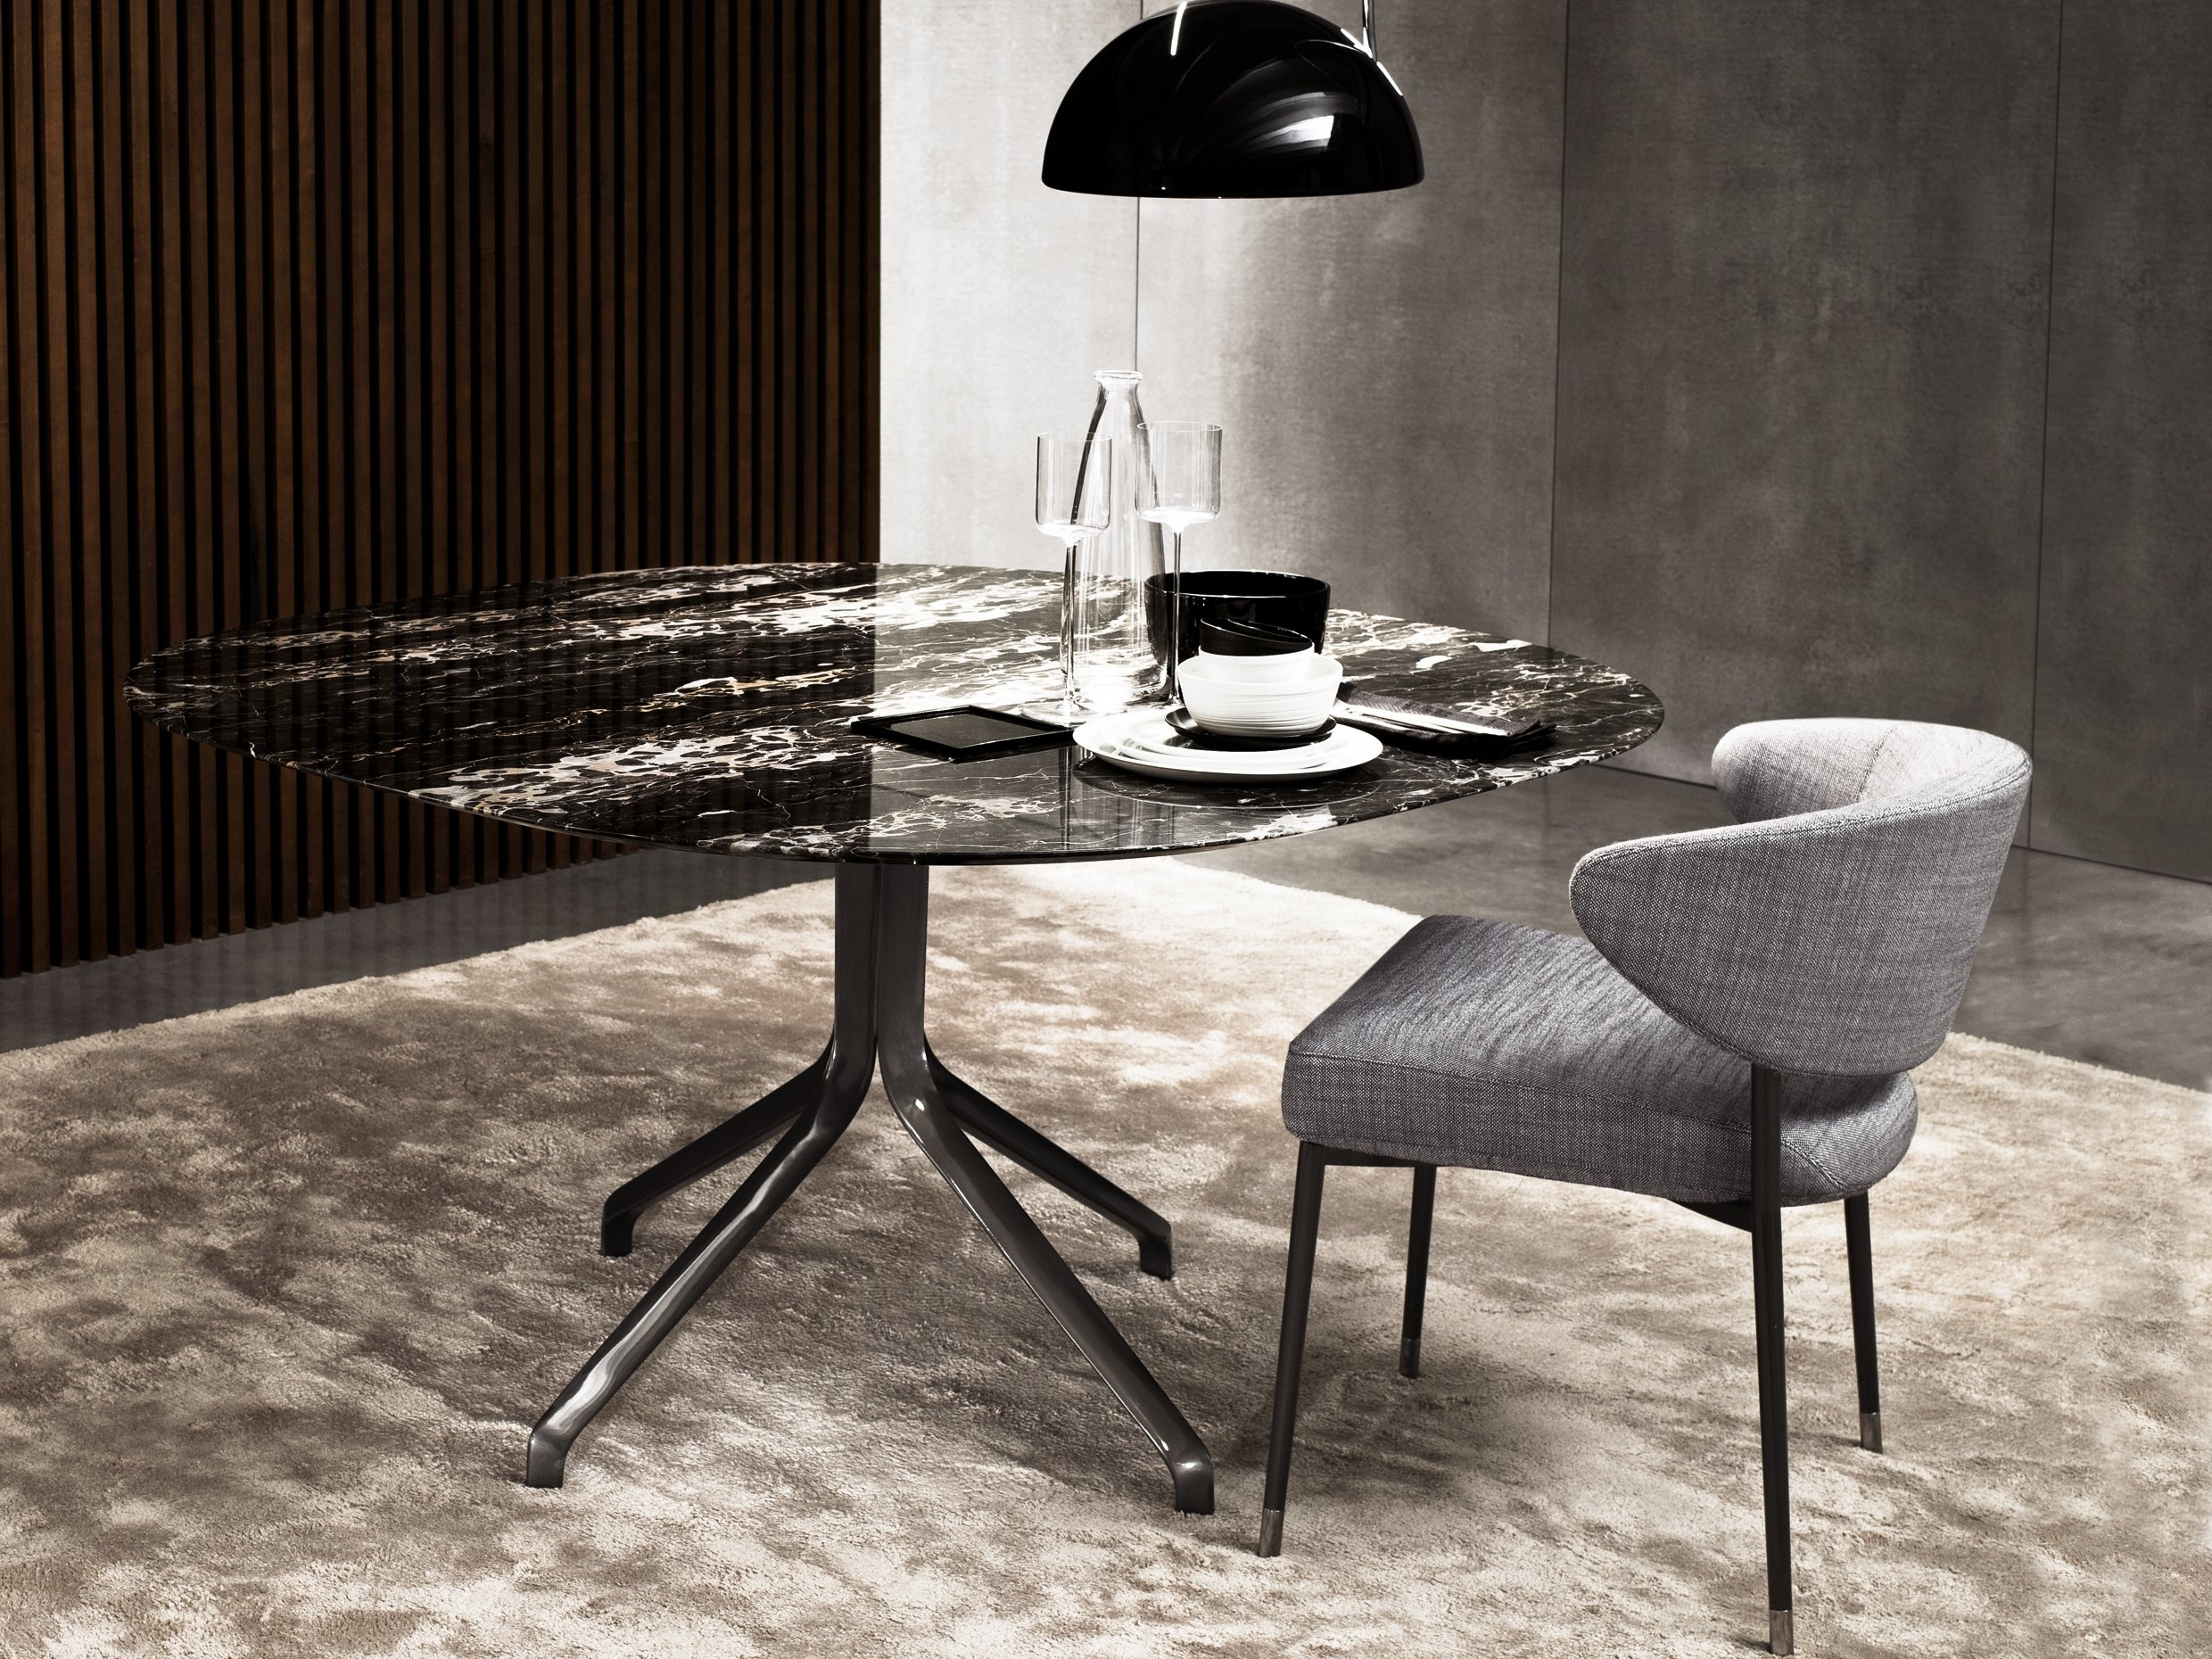 claydon tisch aus marmor by minotti. Black Bedroom Furniture Sets. Home Design Ideas